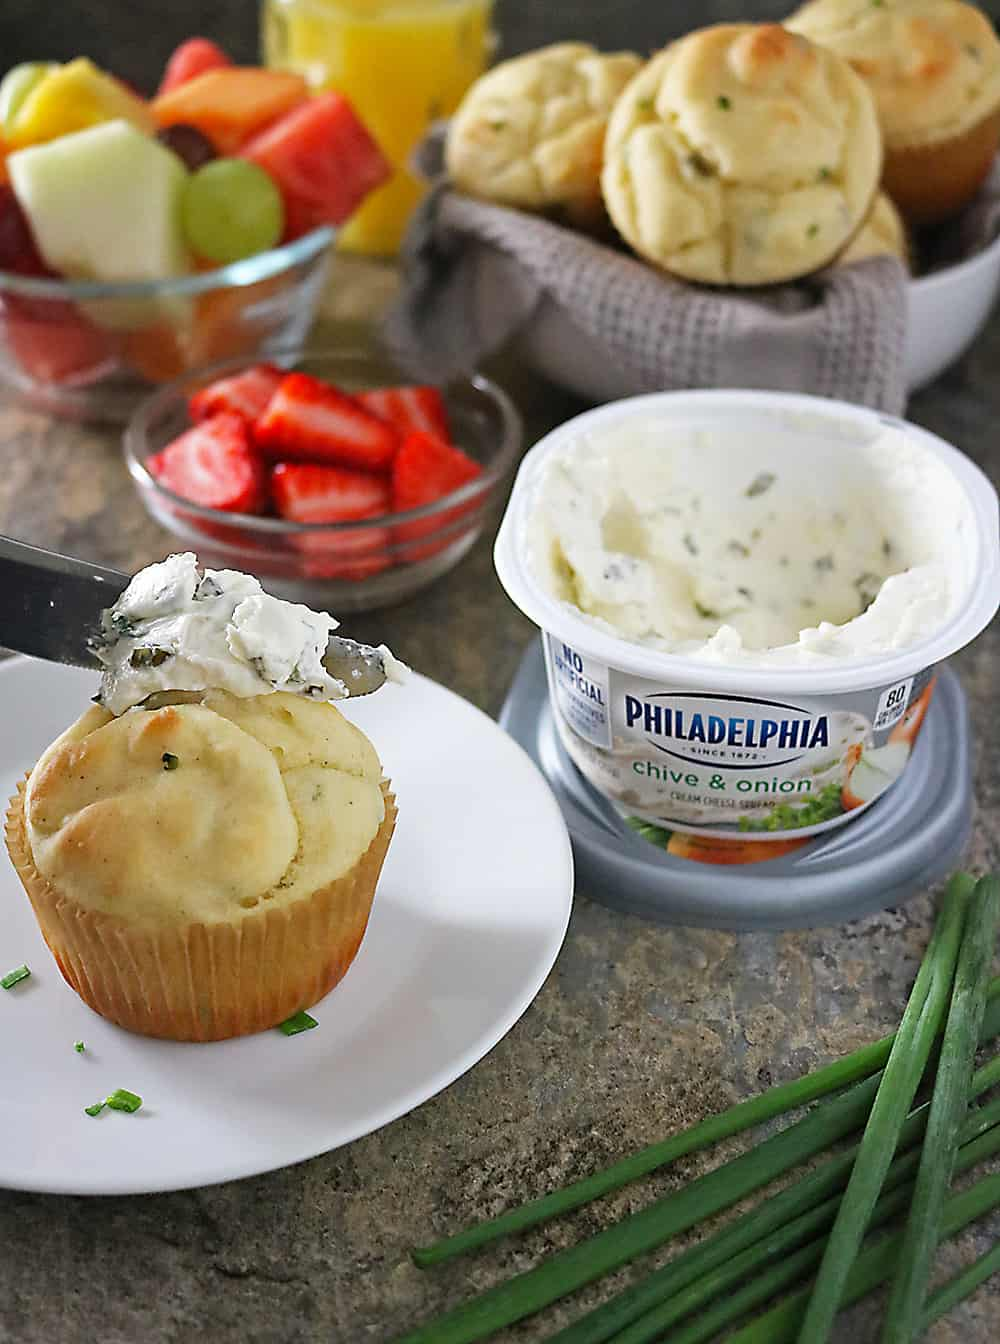 Breakfast Buffet with PHILADELPHIA Cream Cheese IN muffins And On Muffins Photo.